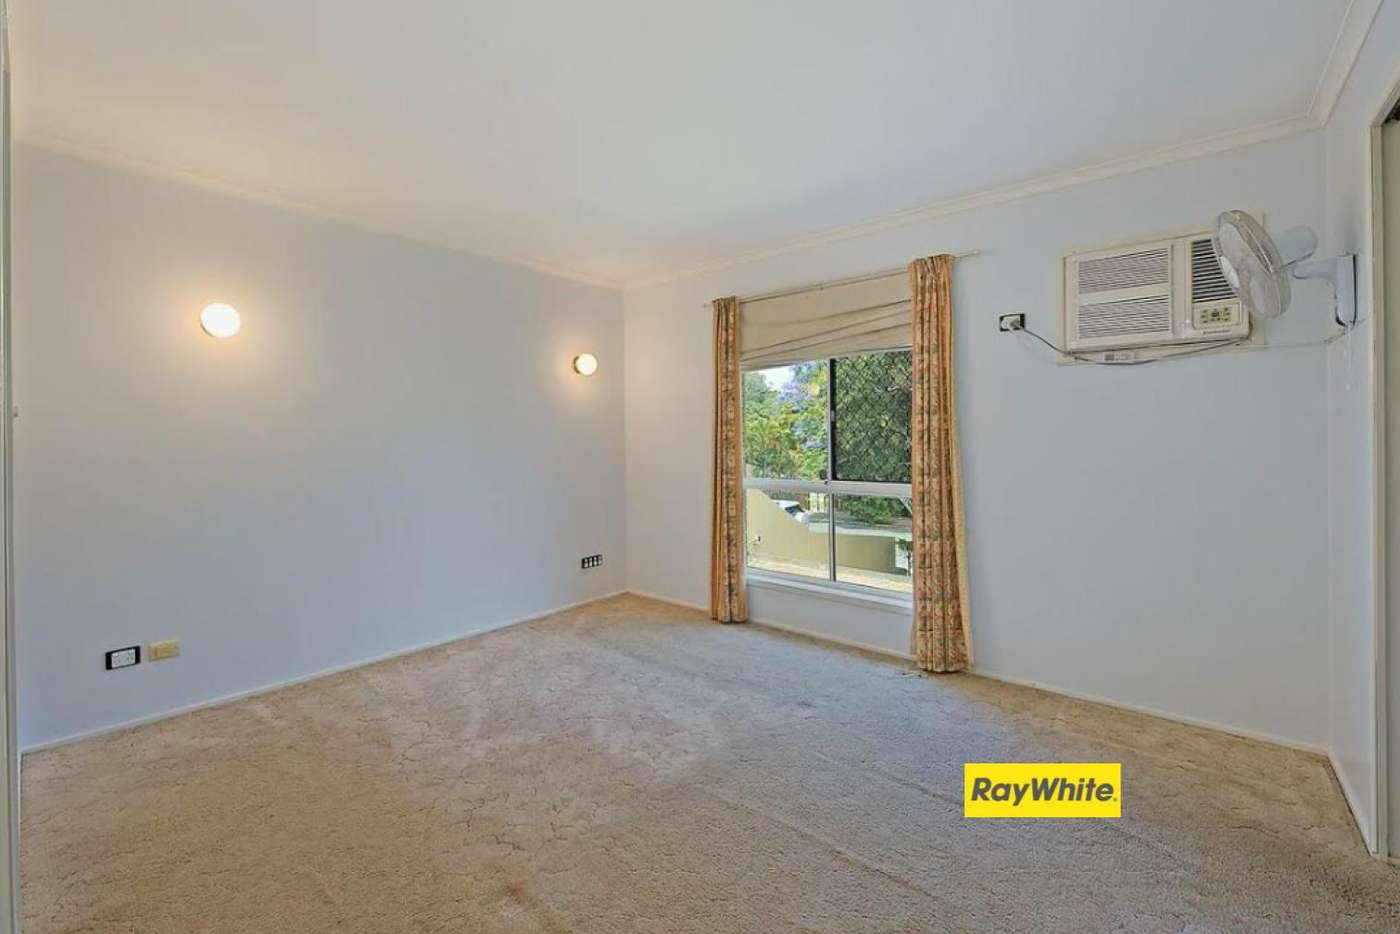 Sixth view of Homely house listing, 74 Orchid Ave, Kallangur QLD 4503